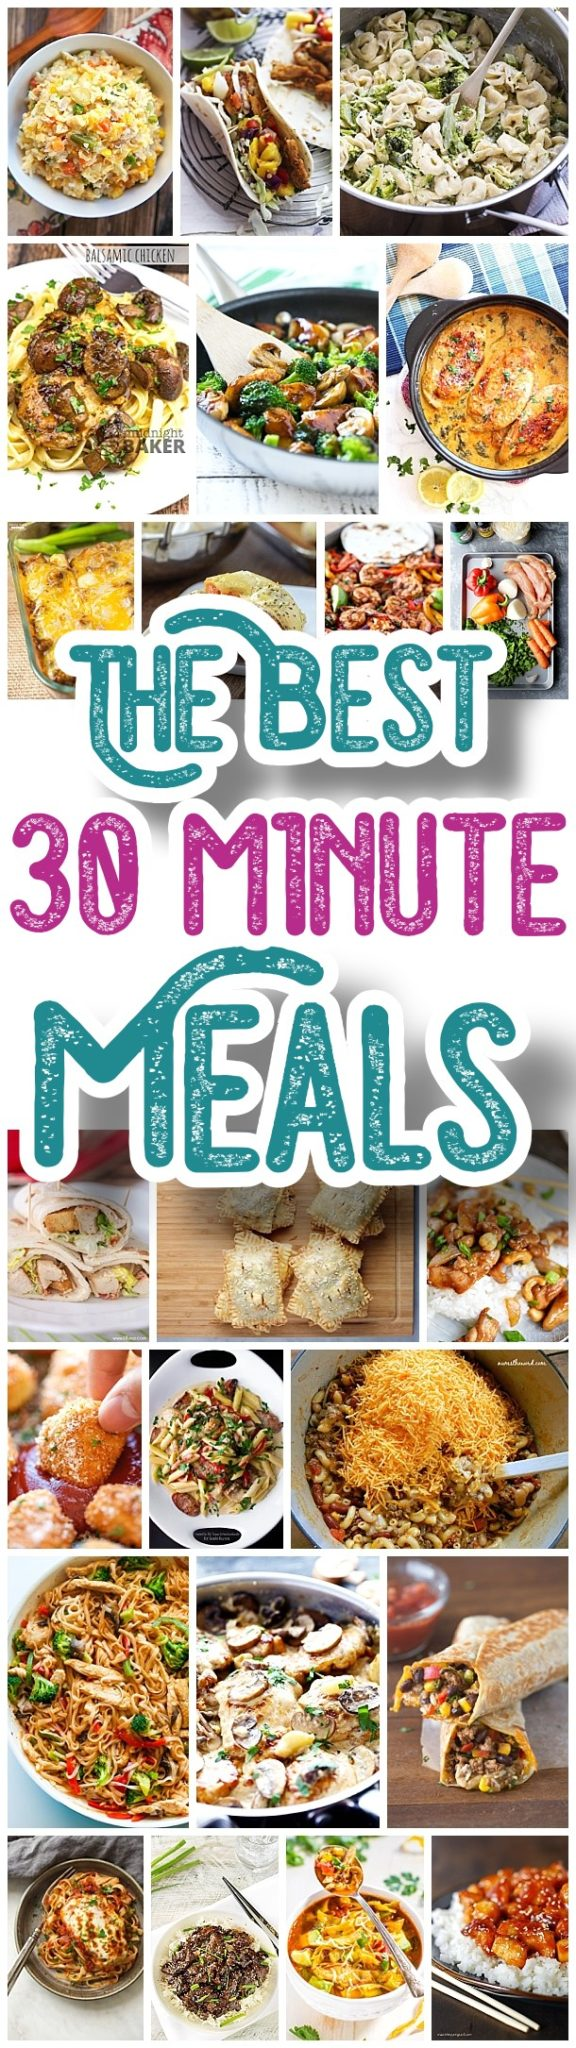 The BEST 30 Minute Meals Recipes - Easy, Quick and Delicious Family Friendly Lunch and Dinner Menu Ideas - Dreaming in DIY